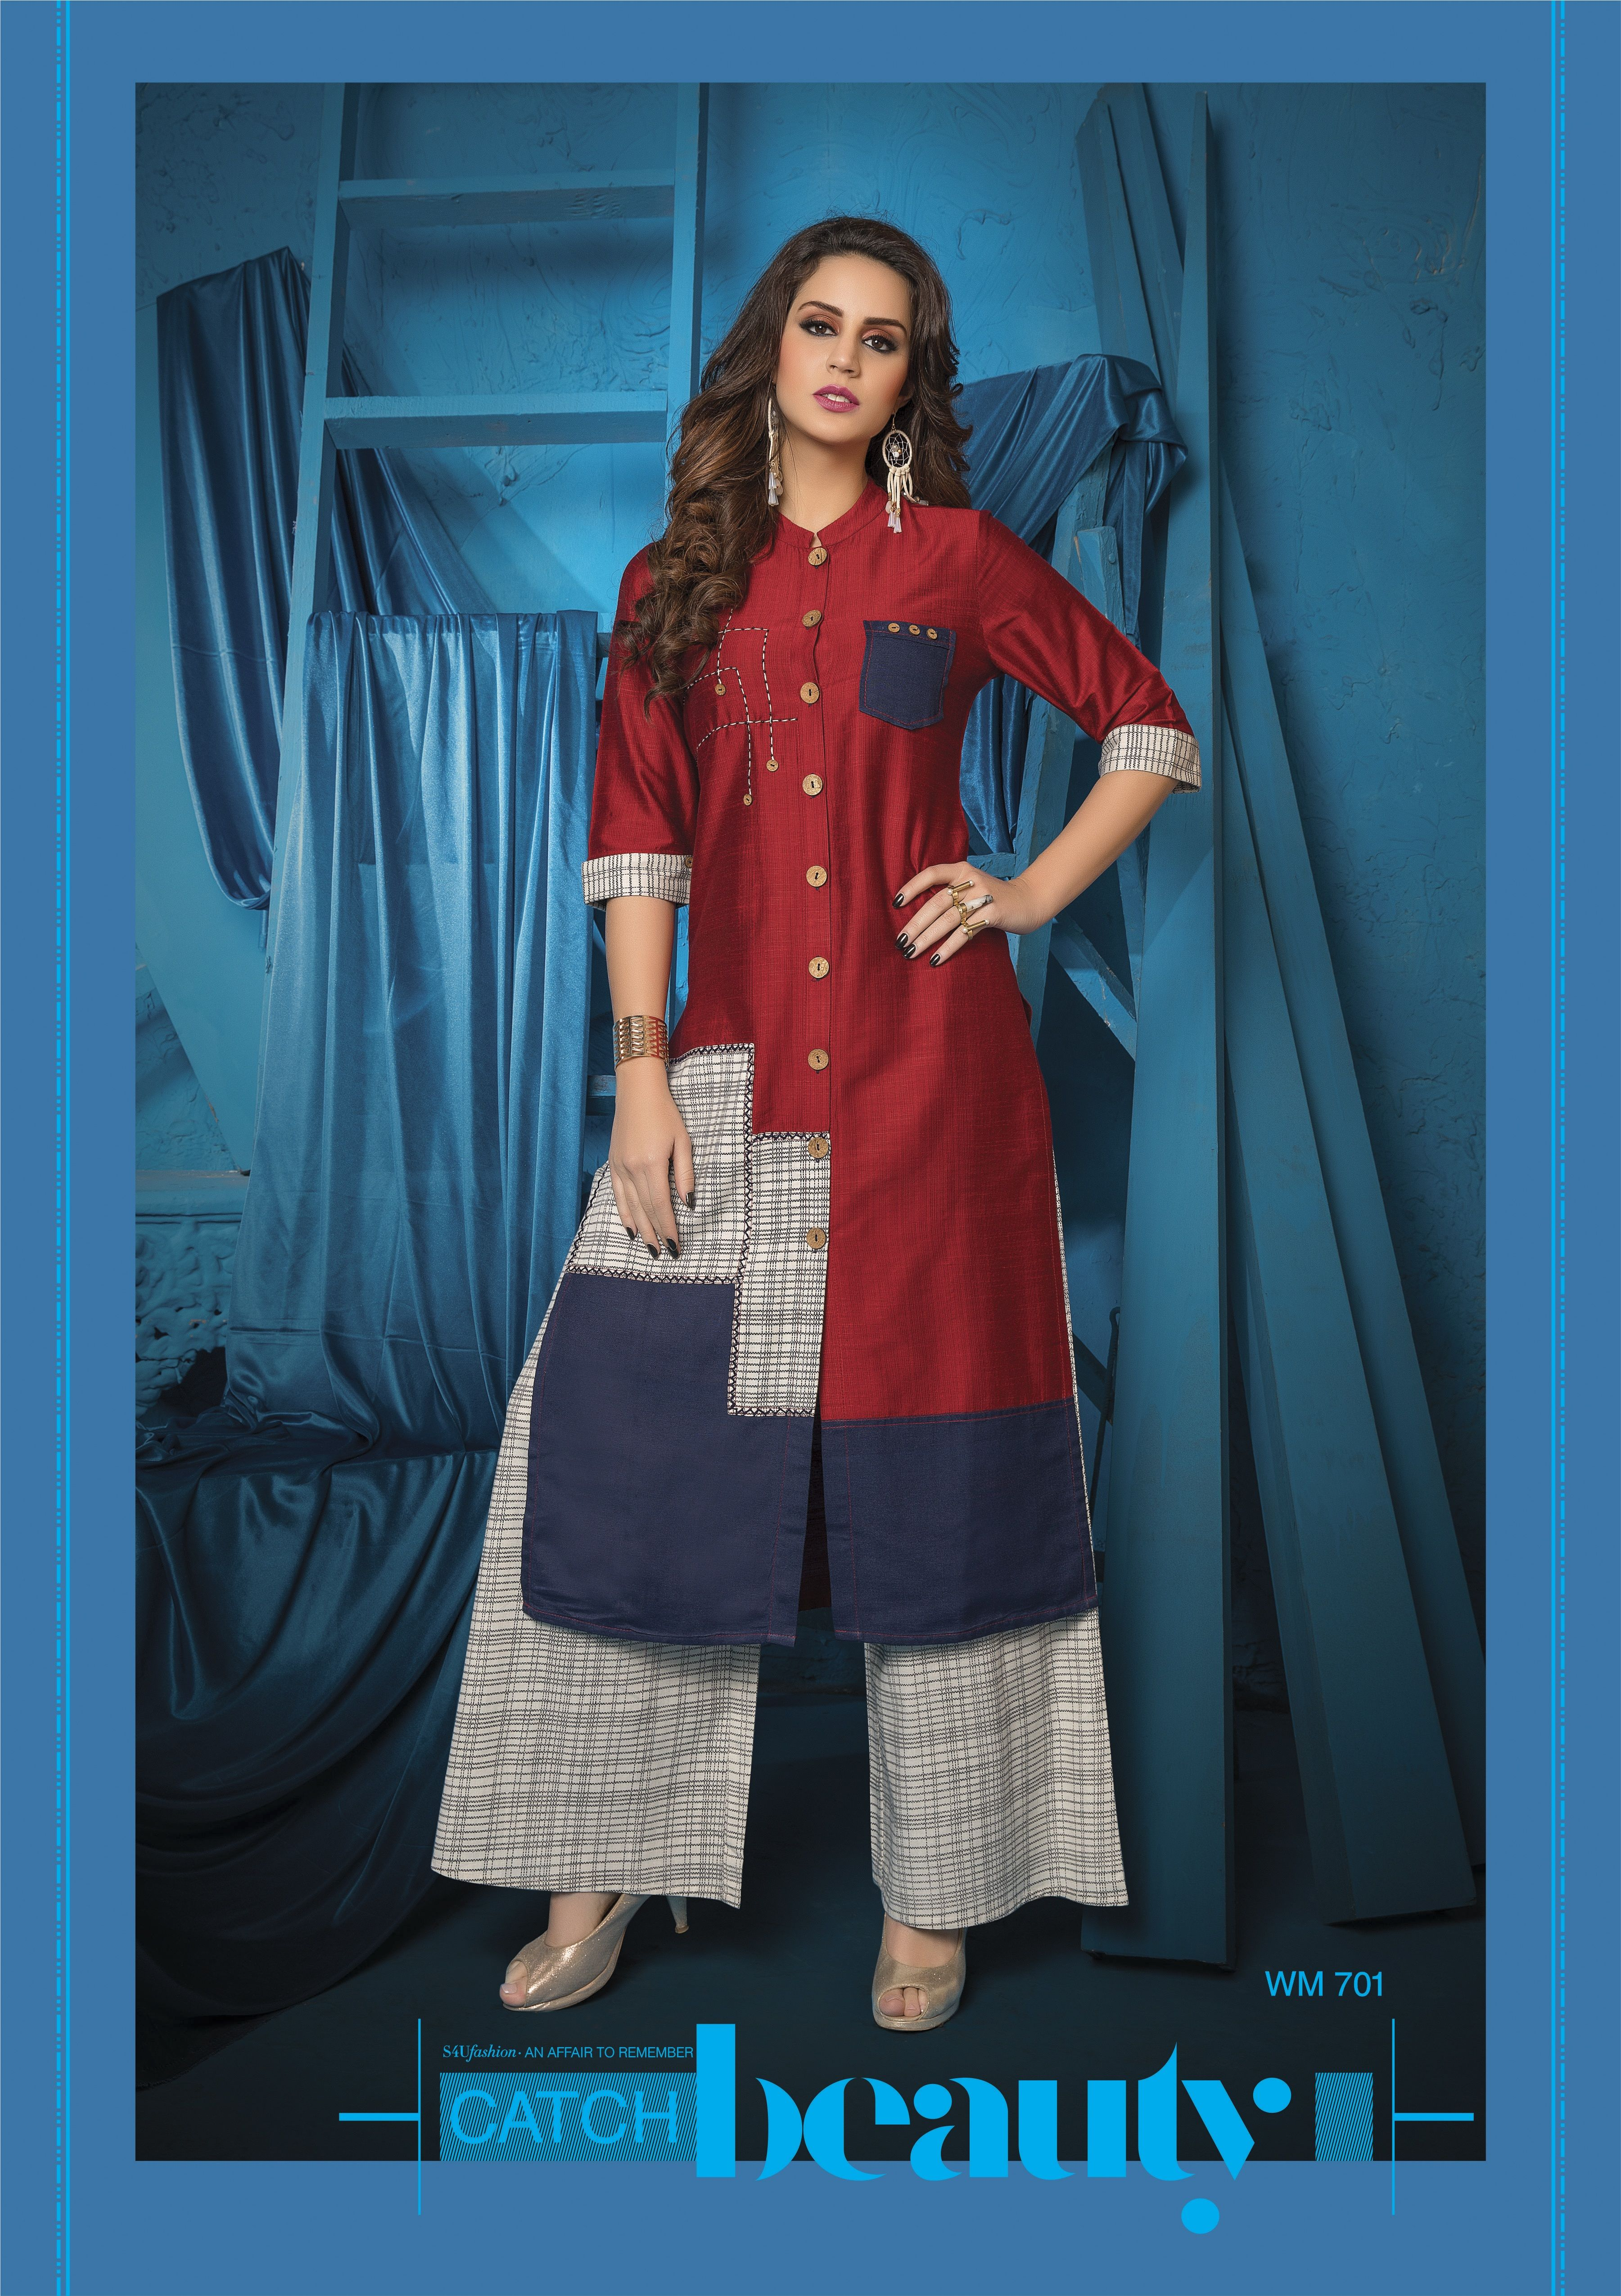 e028dc9f76 #SummerIsAlmostHere Fall in love with super cool kurti & palazzo sets from  S4U by Shivali. The all-new